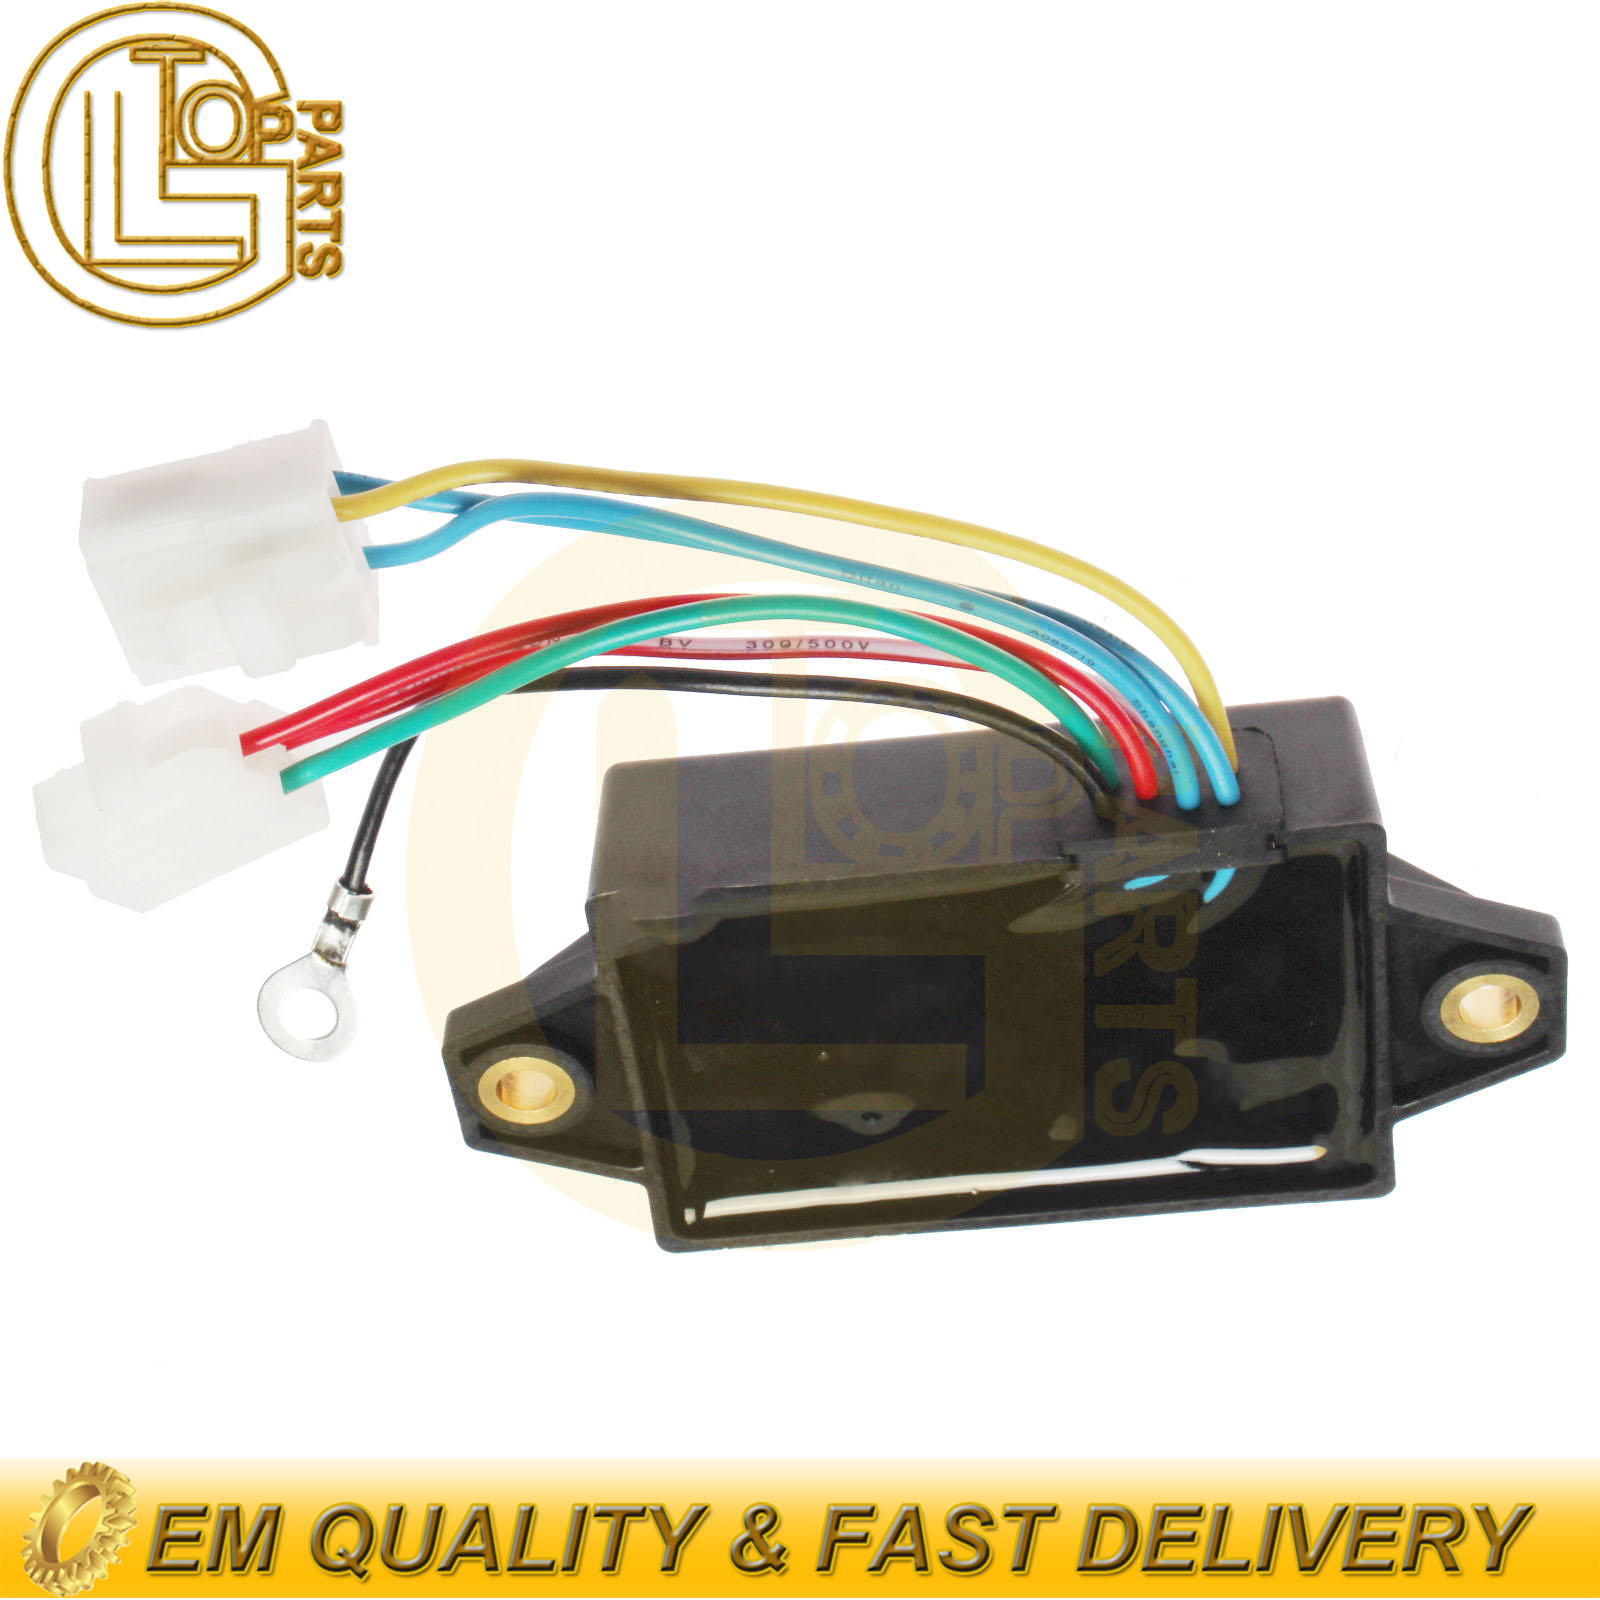 details about new automatic voltage regulator avr mm409675 for mitsubishi k3b diesel engine Triumph Voltage Regulator Wiring